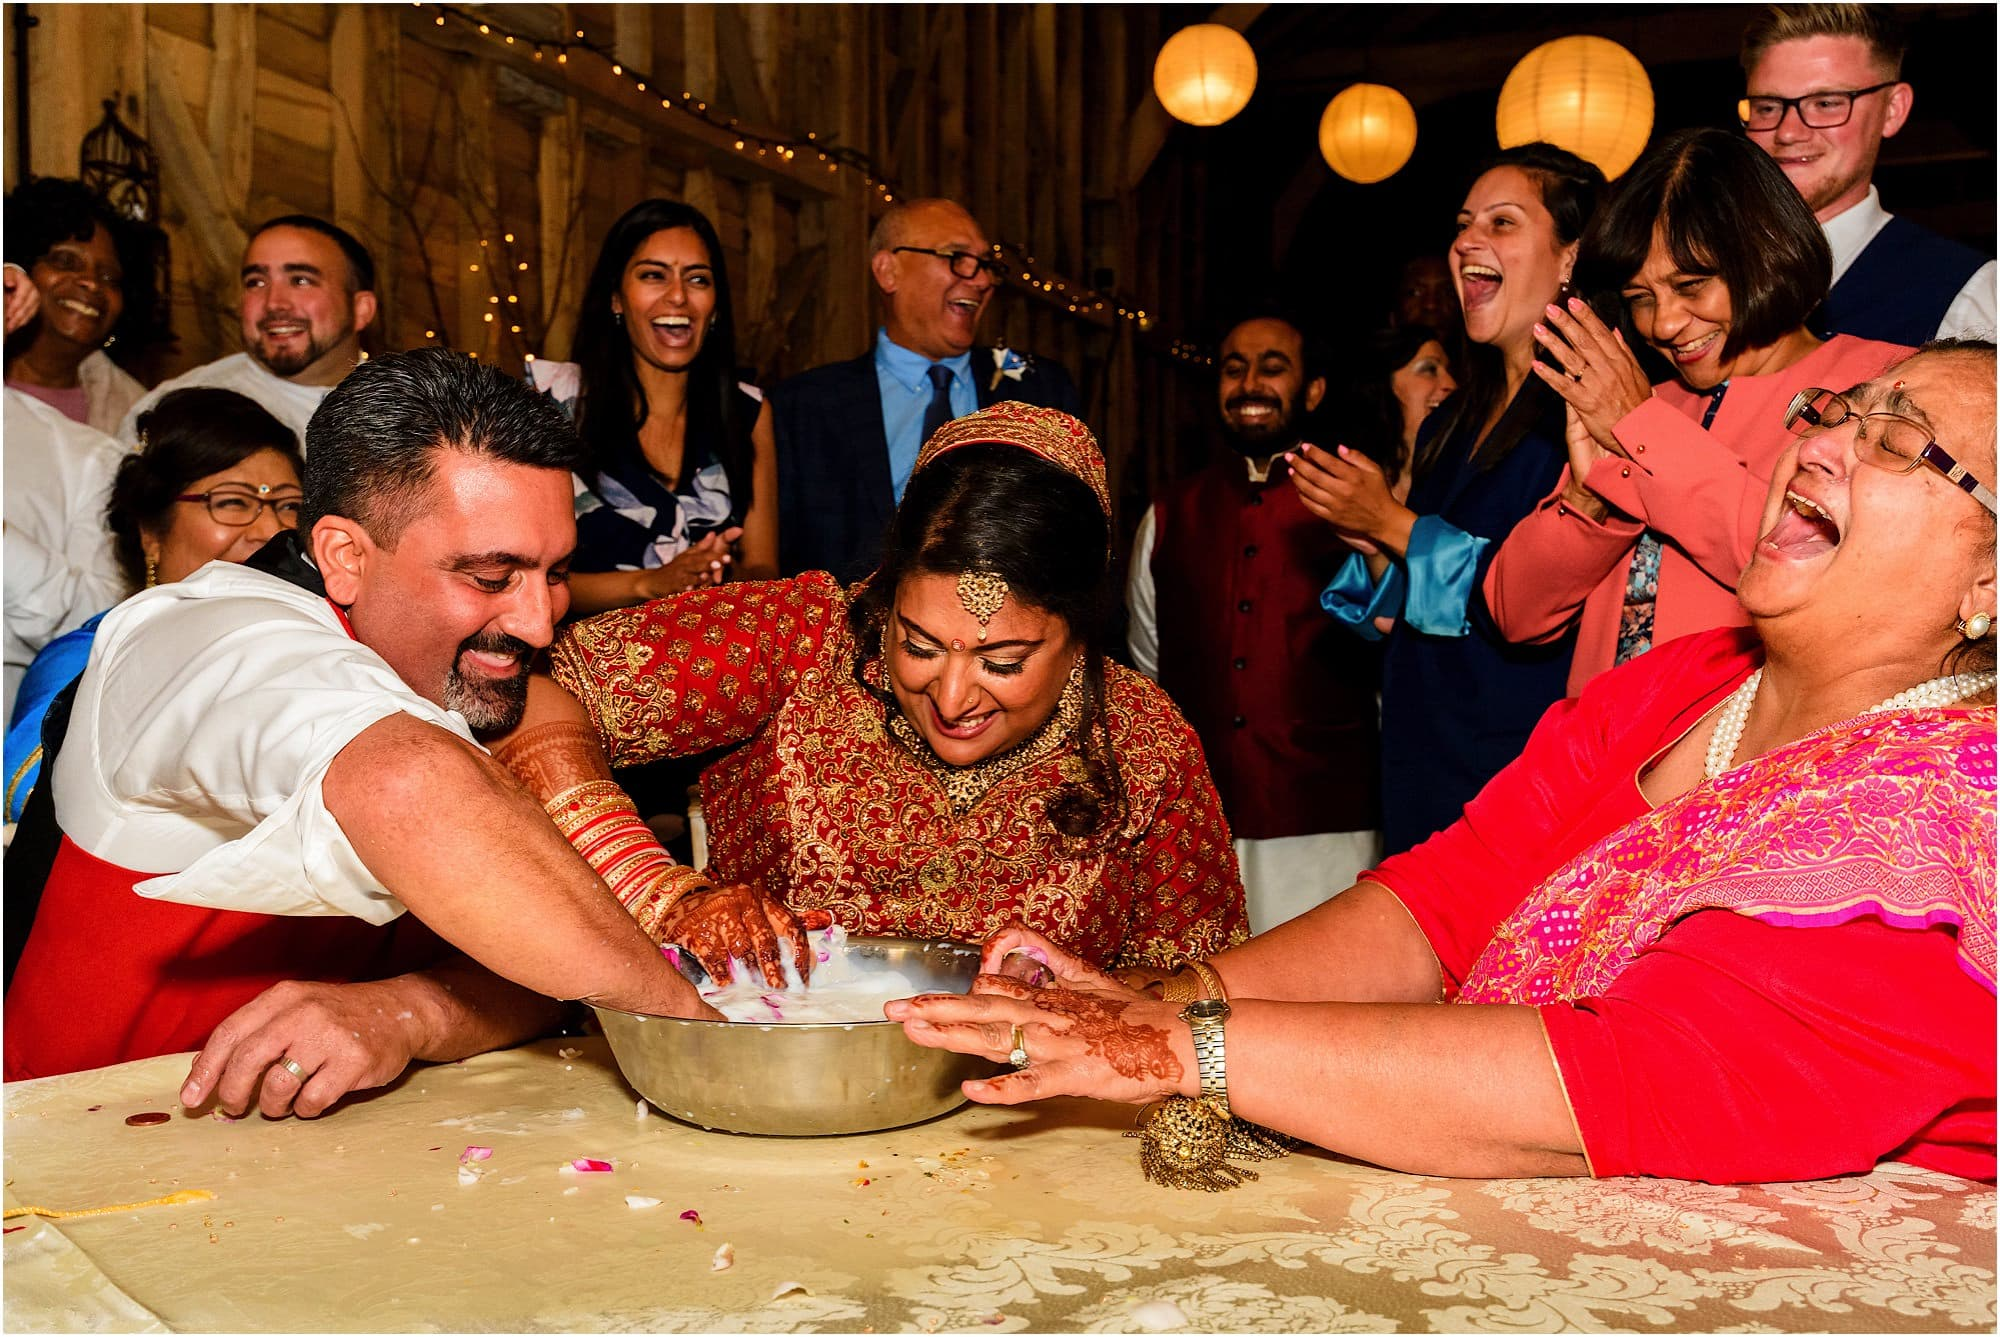 Bride and groom having fun playing a game